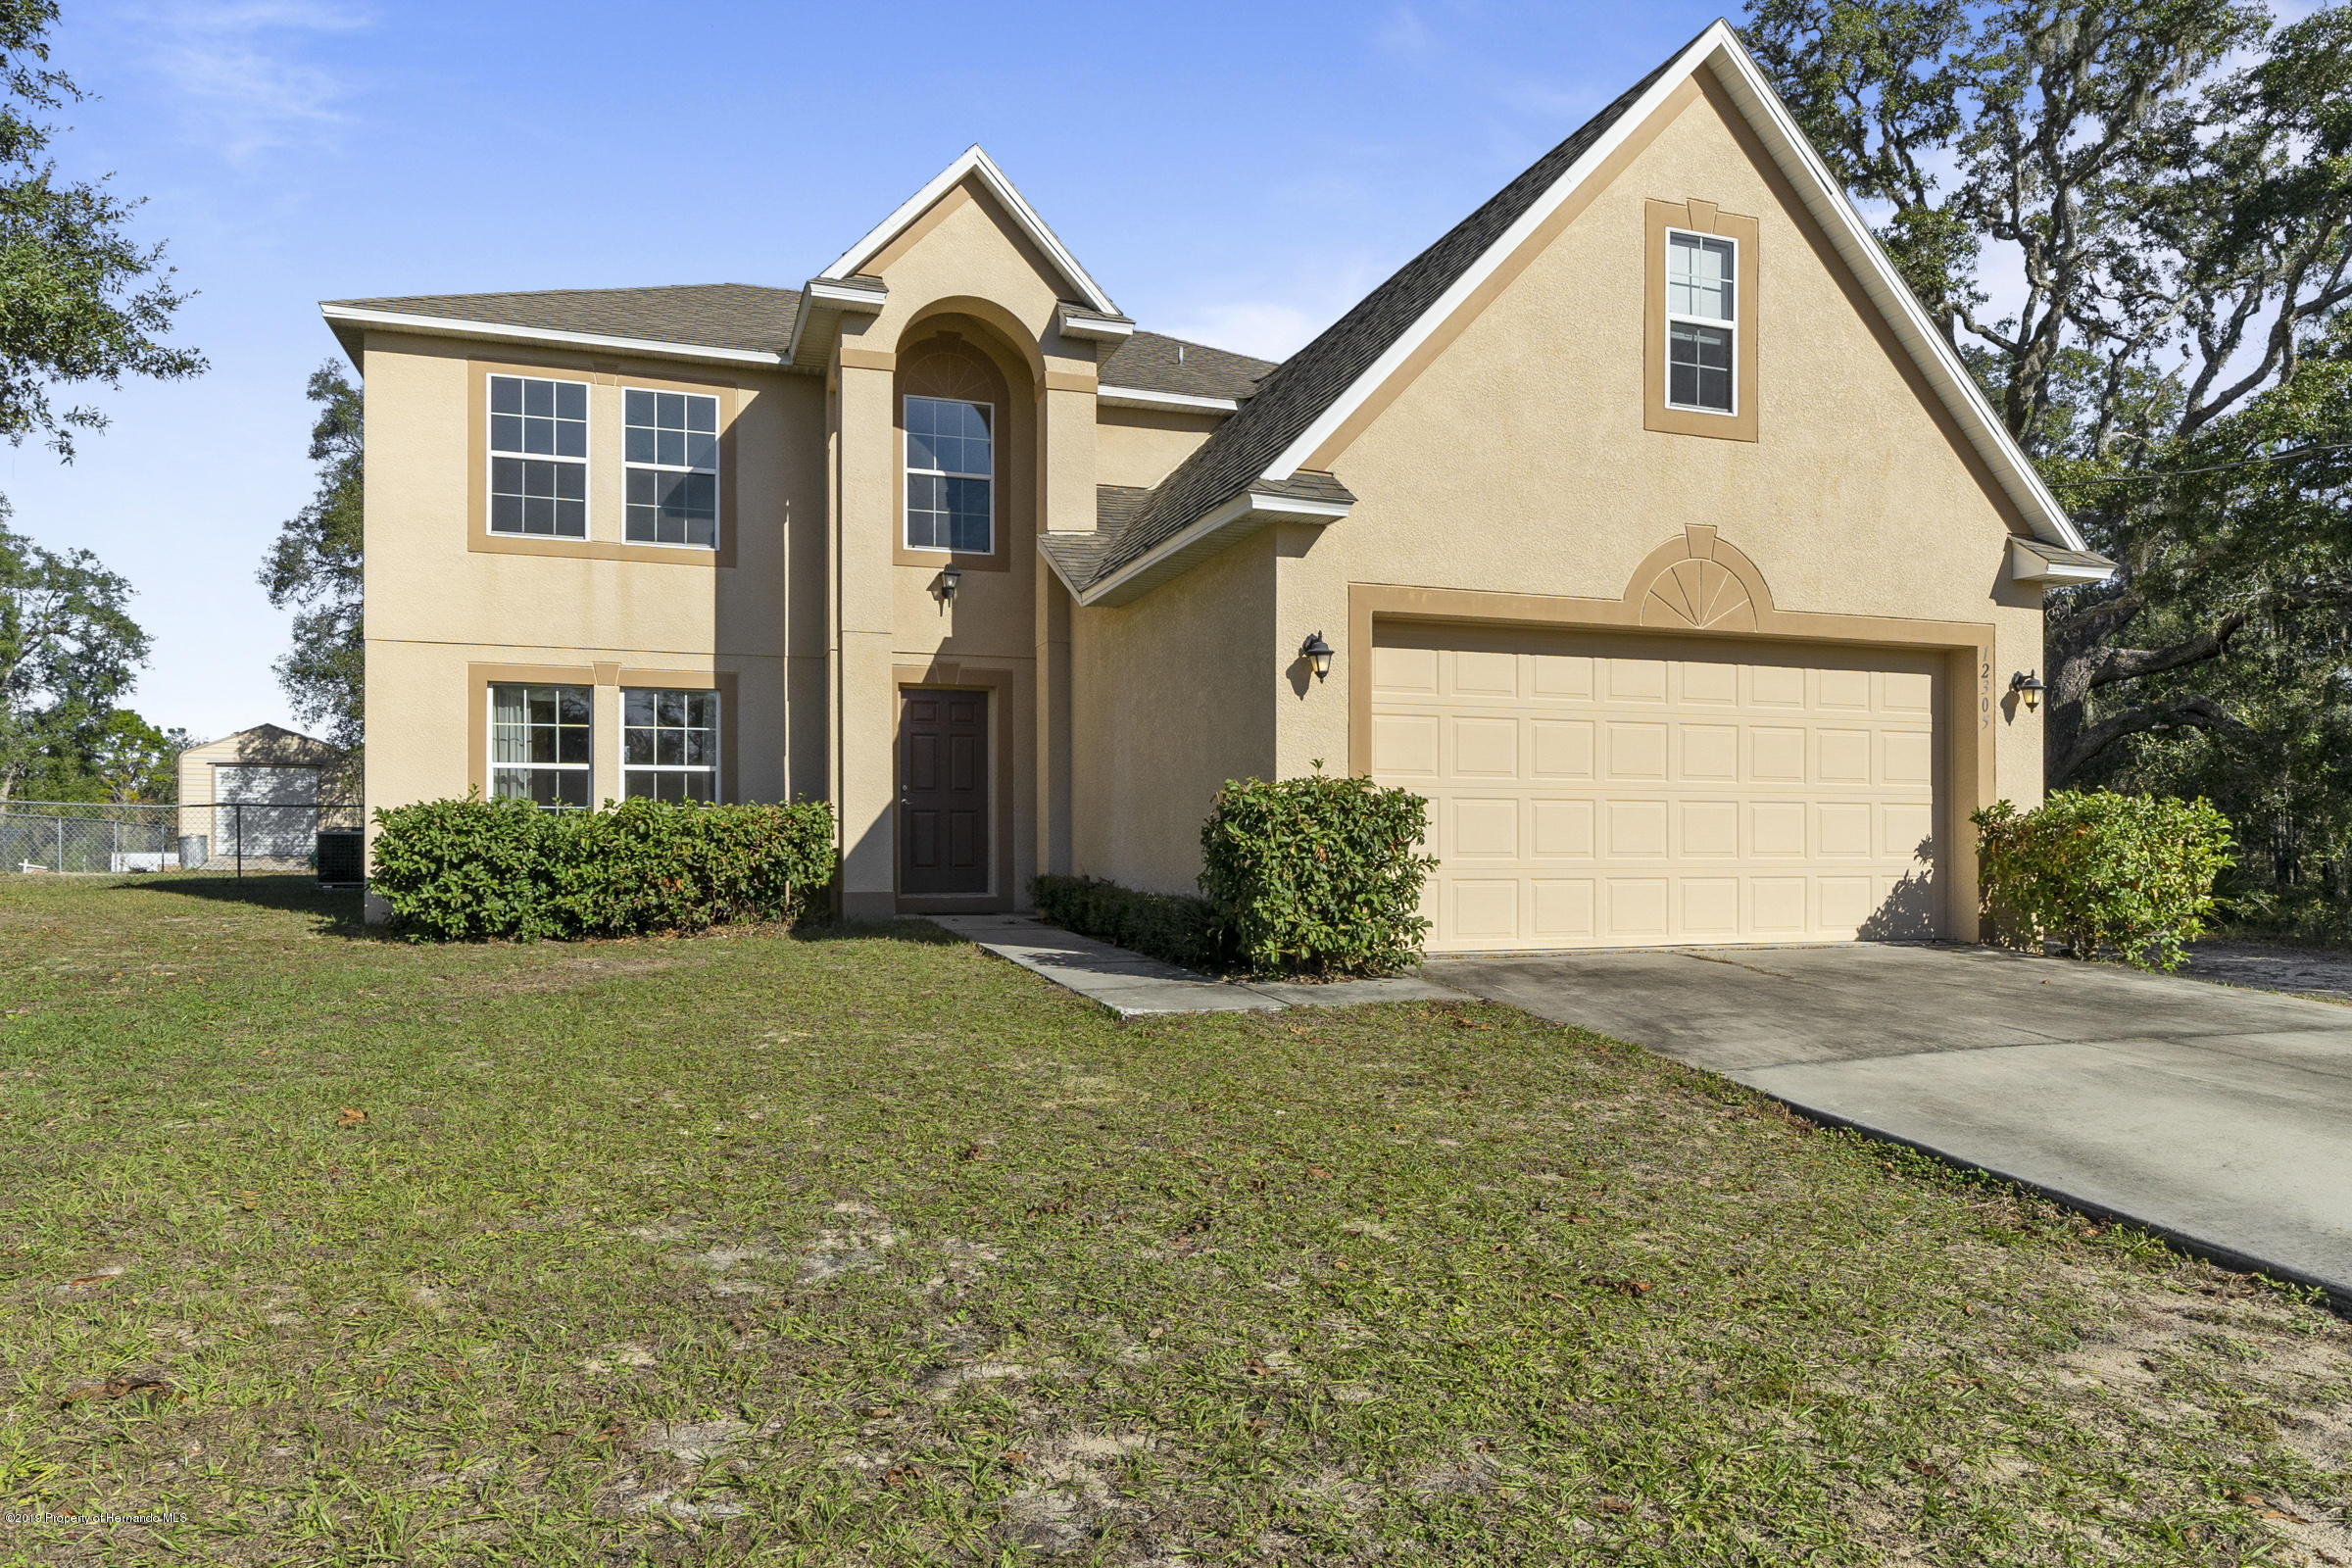 12305 Hoodridge Court, Weeki Wachee, Florida 34614, 5 Bedrooms Bedrooms, ,2 BathroomsBathrooms,Residential,For Sale,Hoodridge,2206057